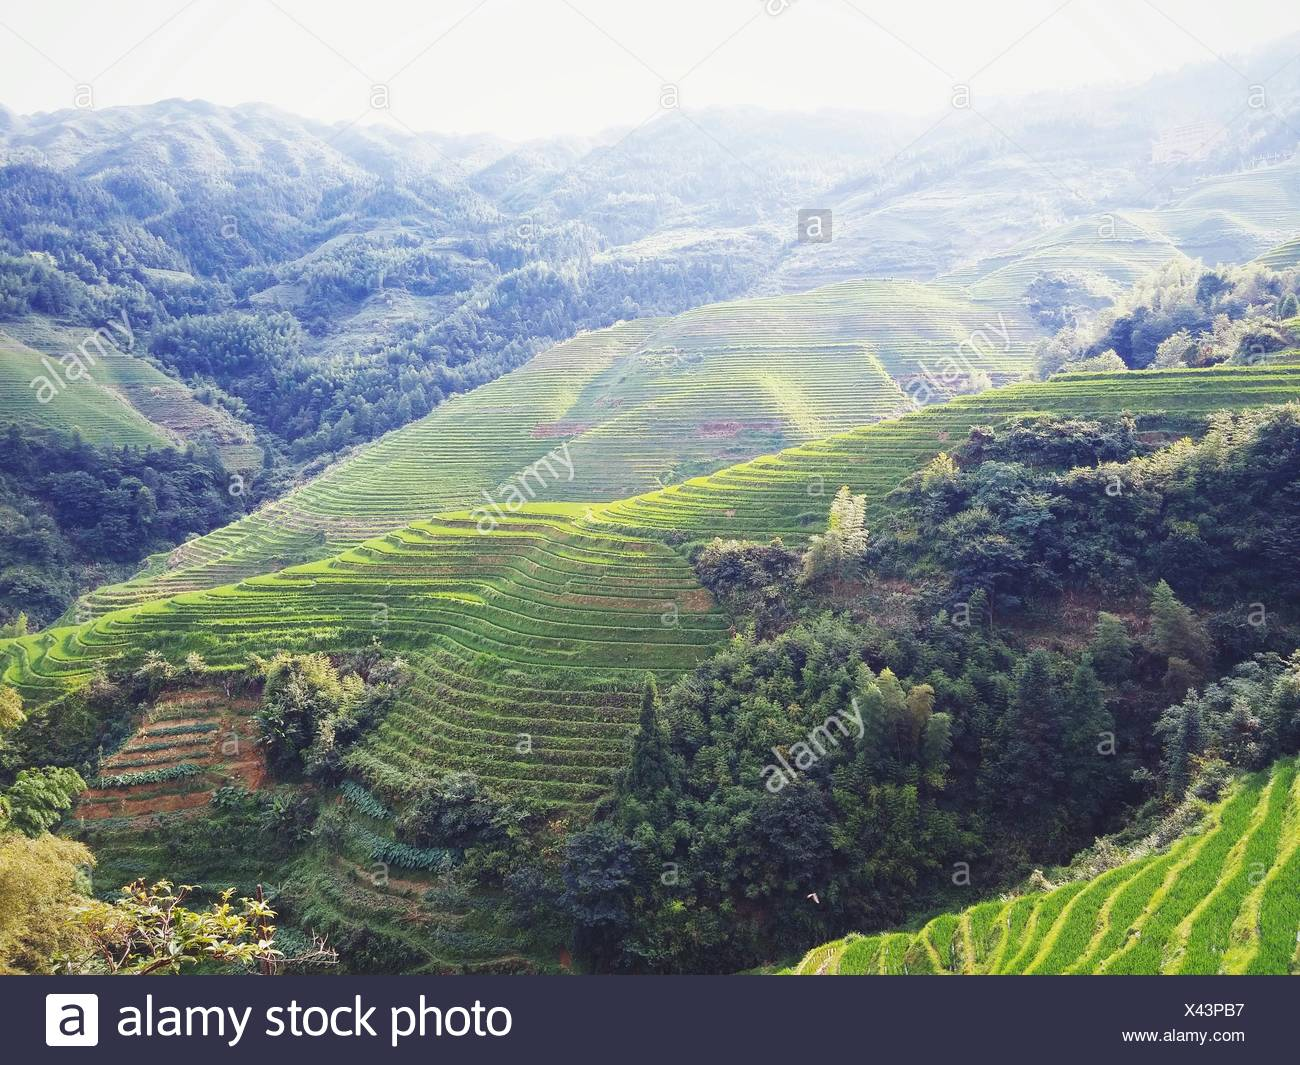 Longji Rice Terraces Against Sky - Stock Image